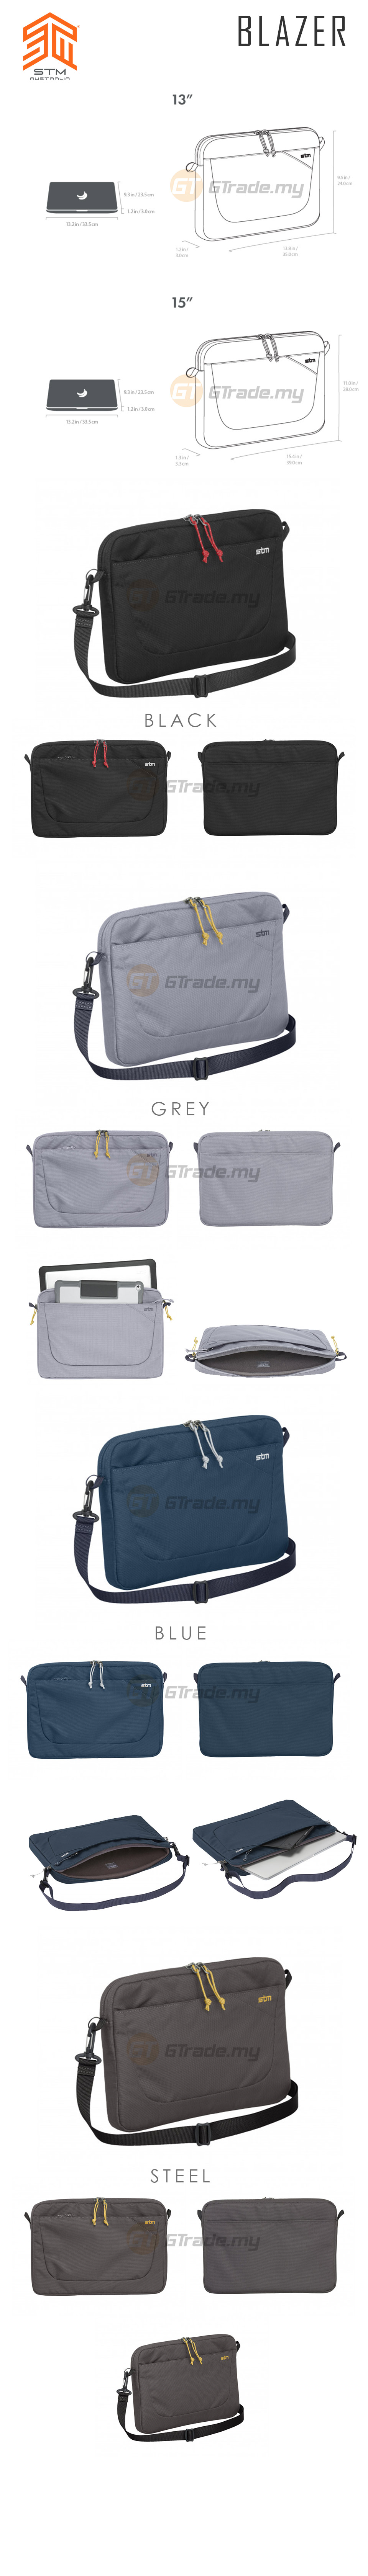 stm-blazer-laptop-macbook-sleeve-bag-13-p